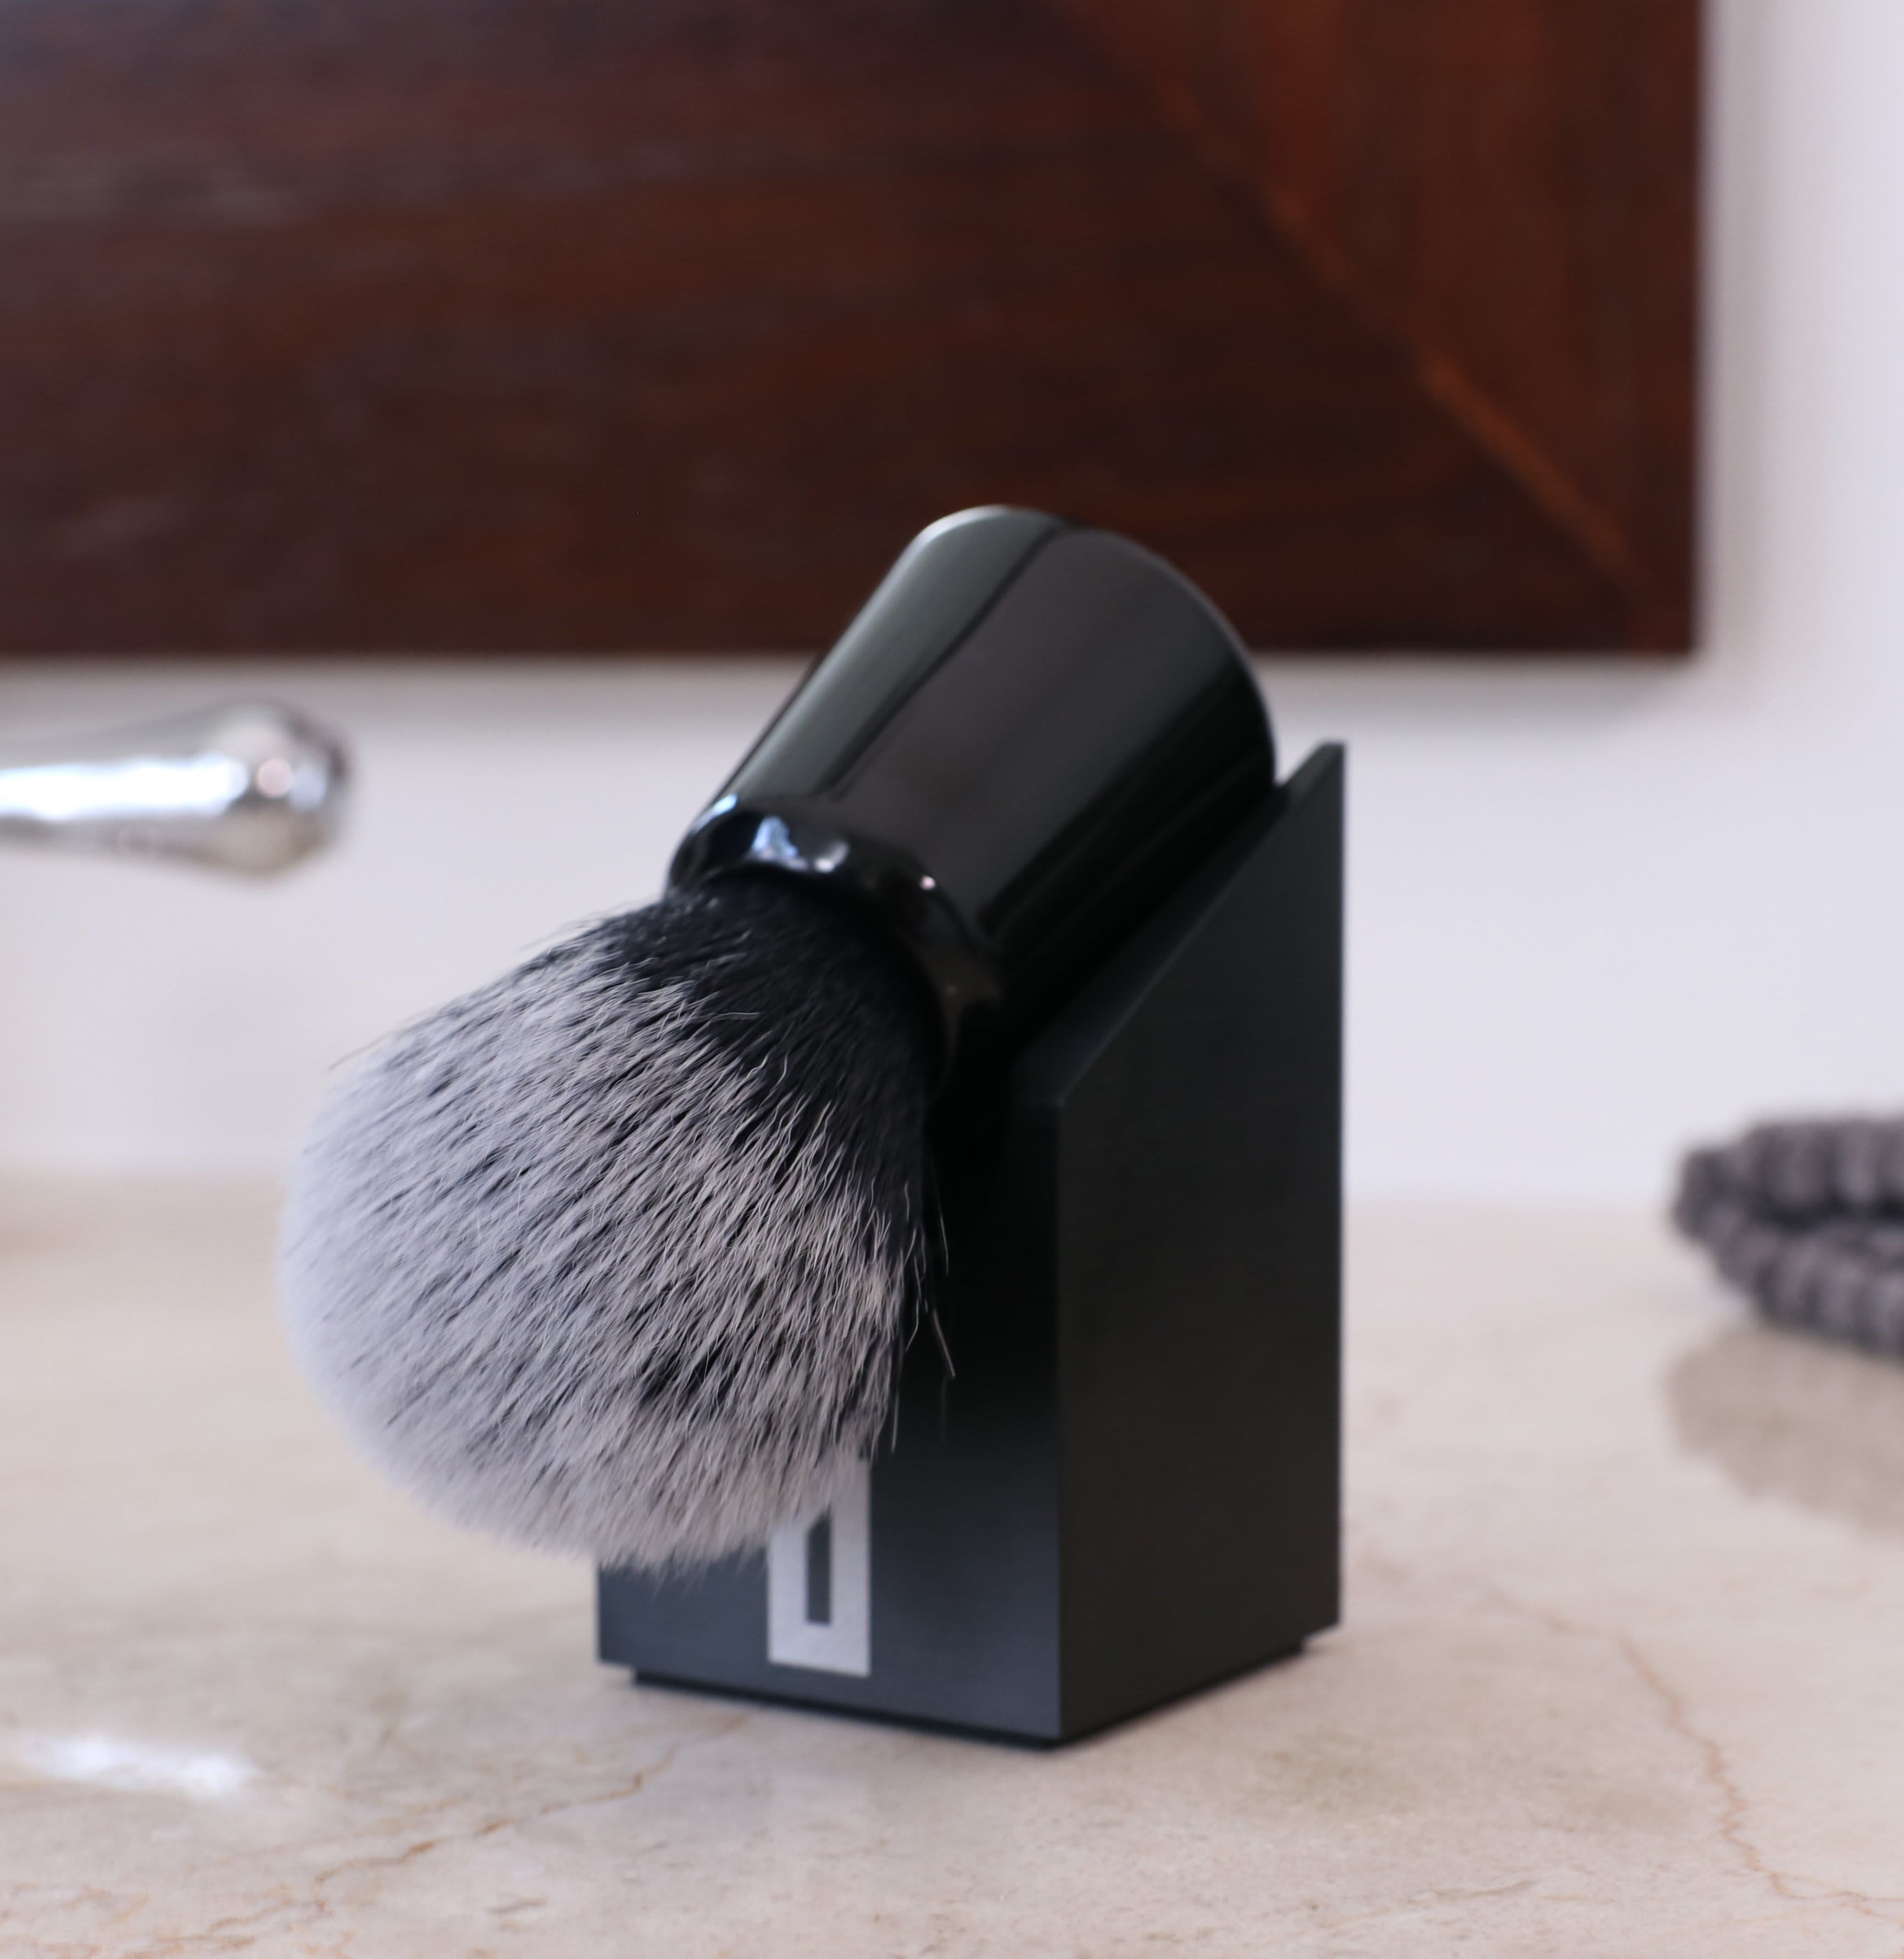 OneBlade Brush Stand with shaving brush on it